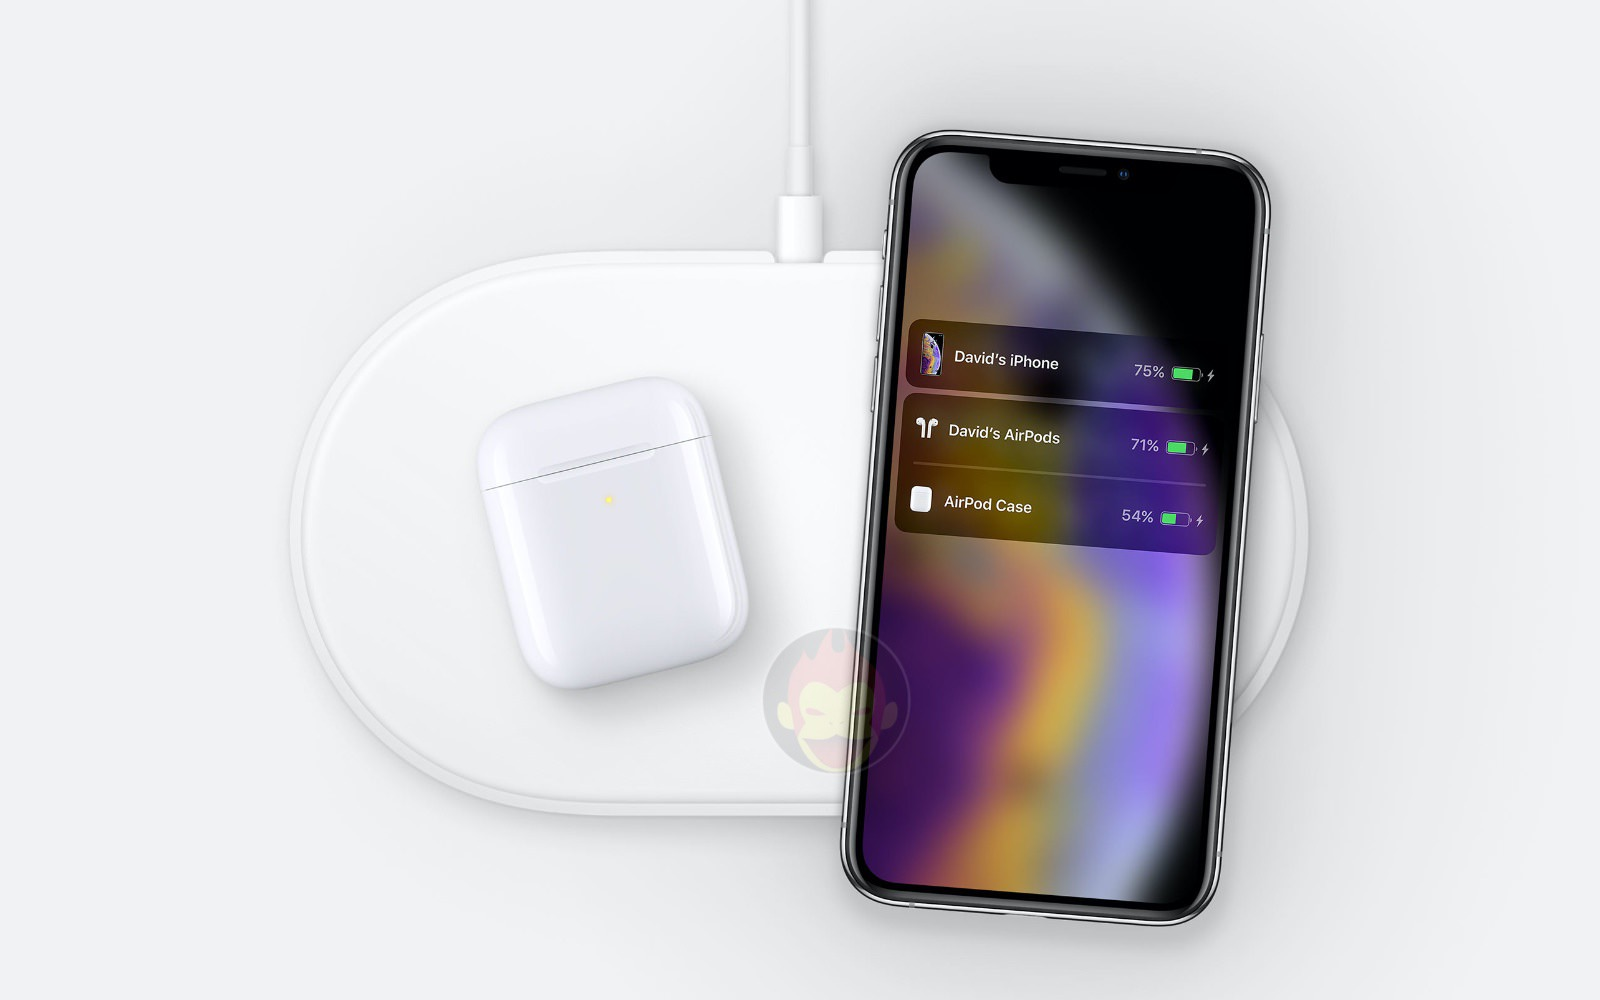 AirPower Mat with iPhoneXS found on Apple Servers